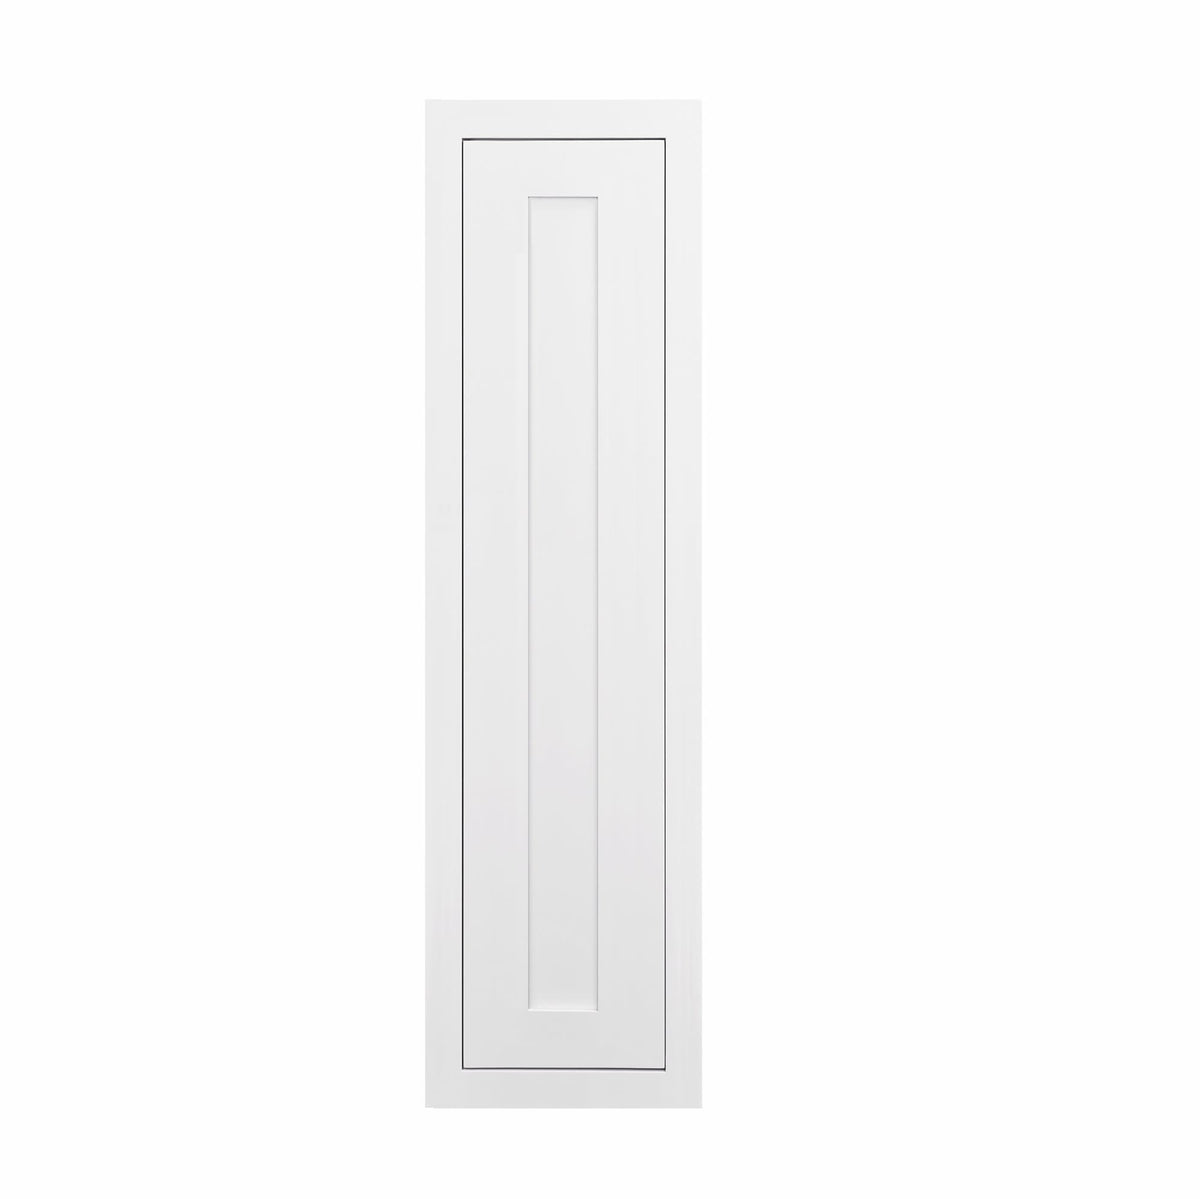 "39"" Tall Wall Cabinet 39"" Tall Snow White Inset Shaker Wall Cabinet - Single Door 12"", 15"", 18"" & 21"" D1W093914 Inset Kitchen Cabinets"